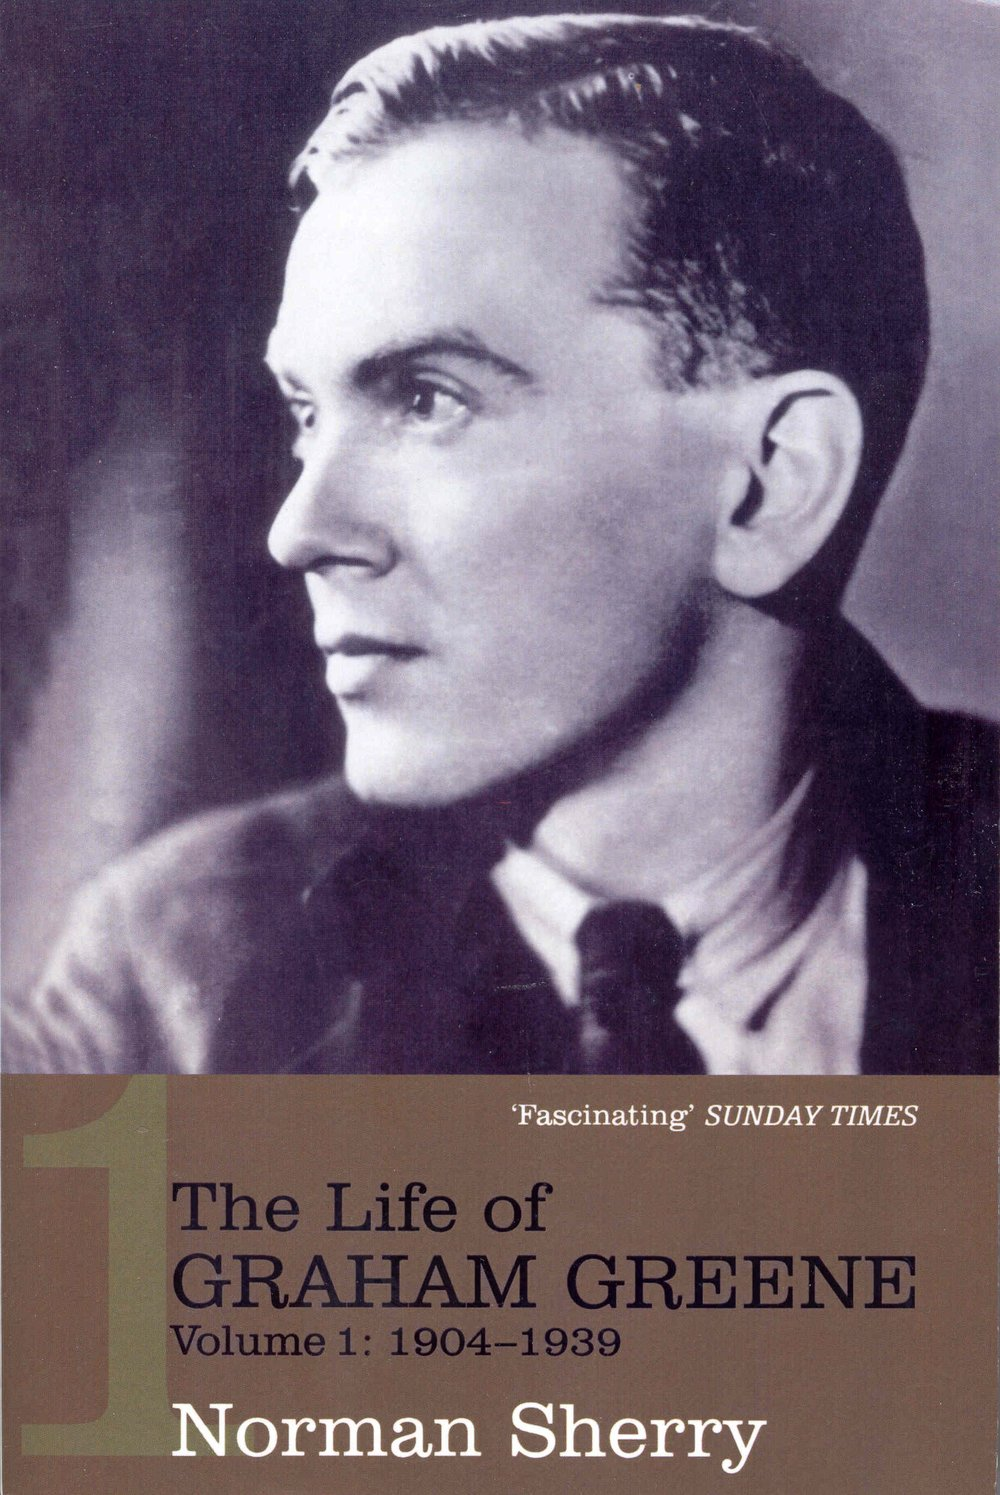 Norman Sherry - The Life of Graham Greene 1